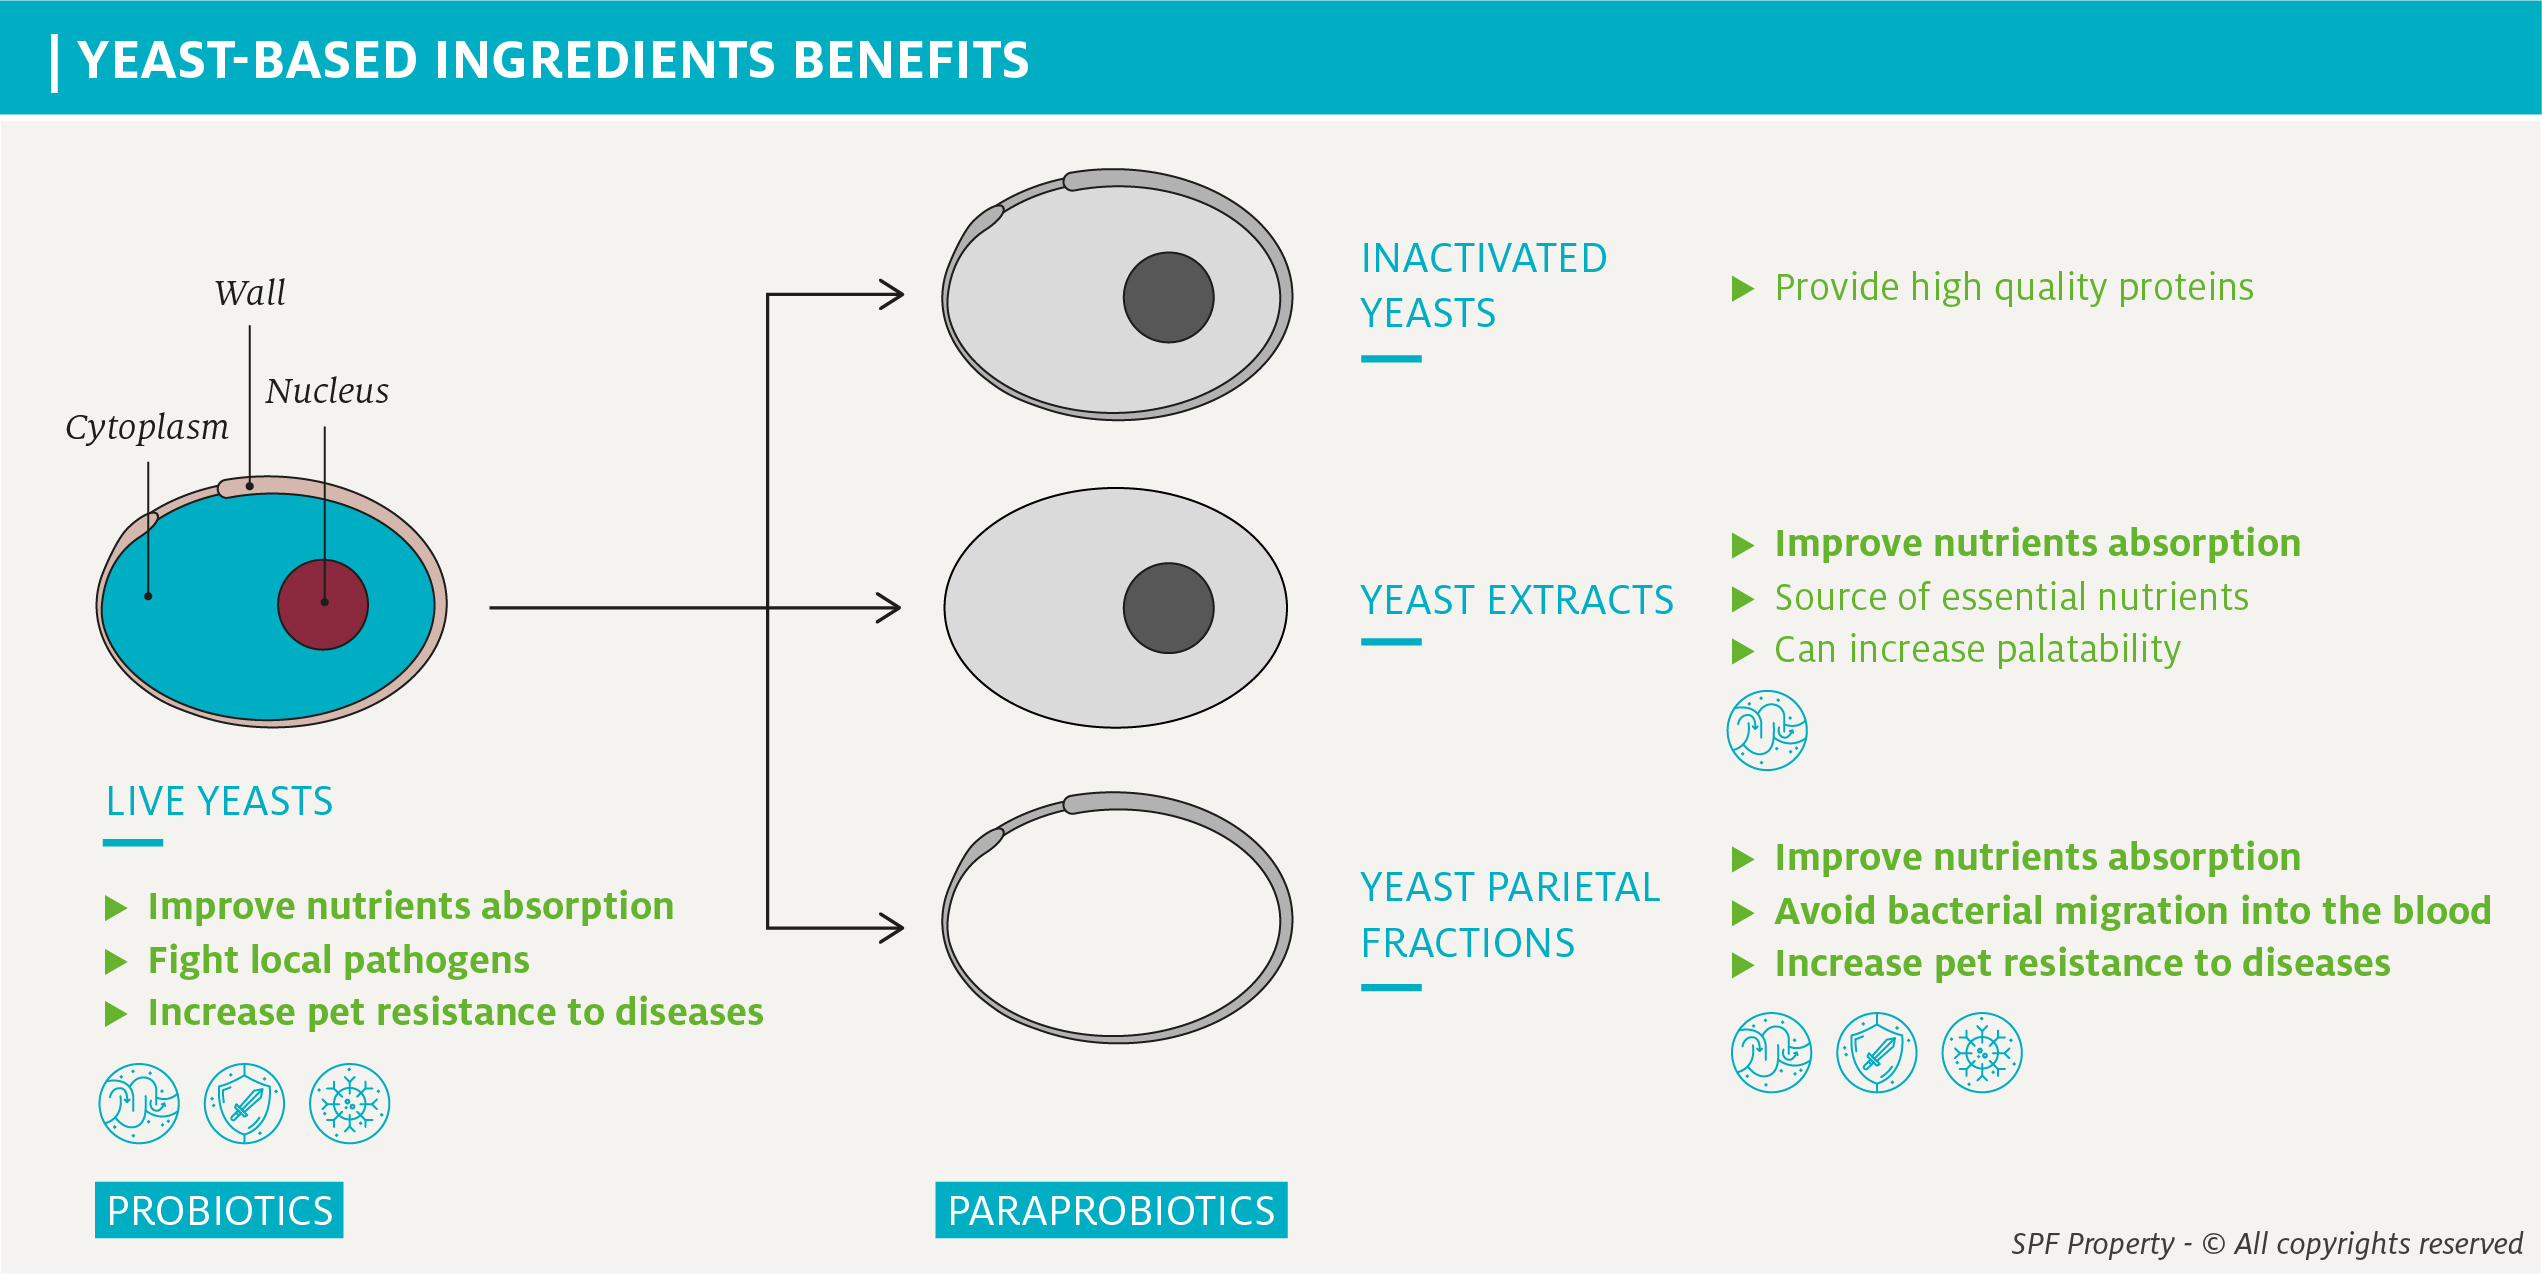 Yeast-based ingredients: from live yeasts to yeast wall fractions